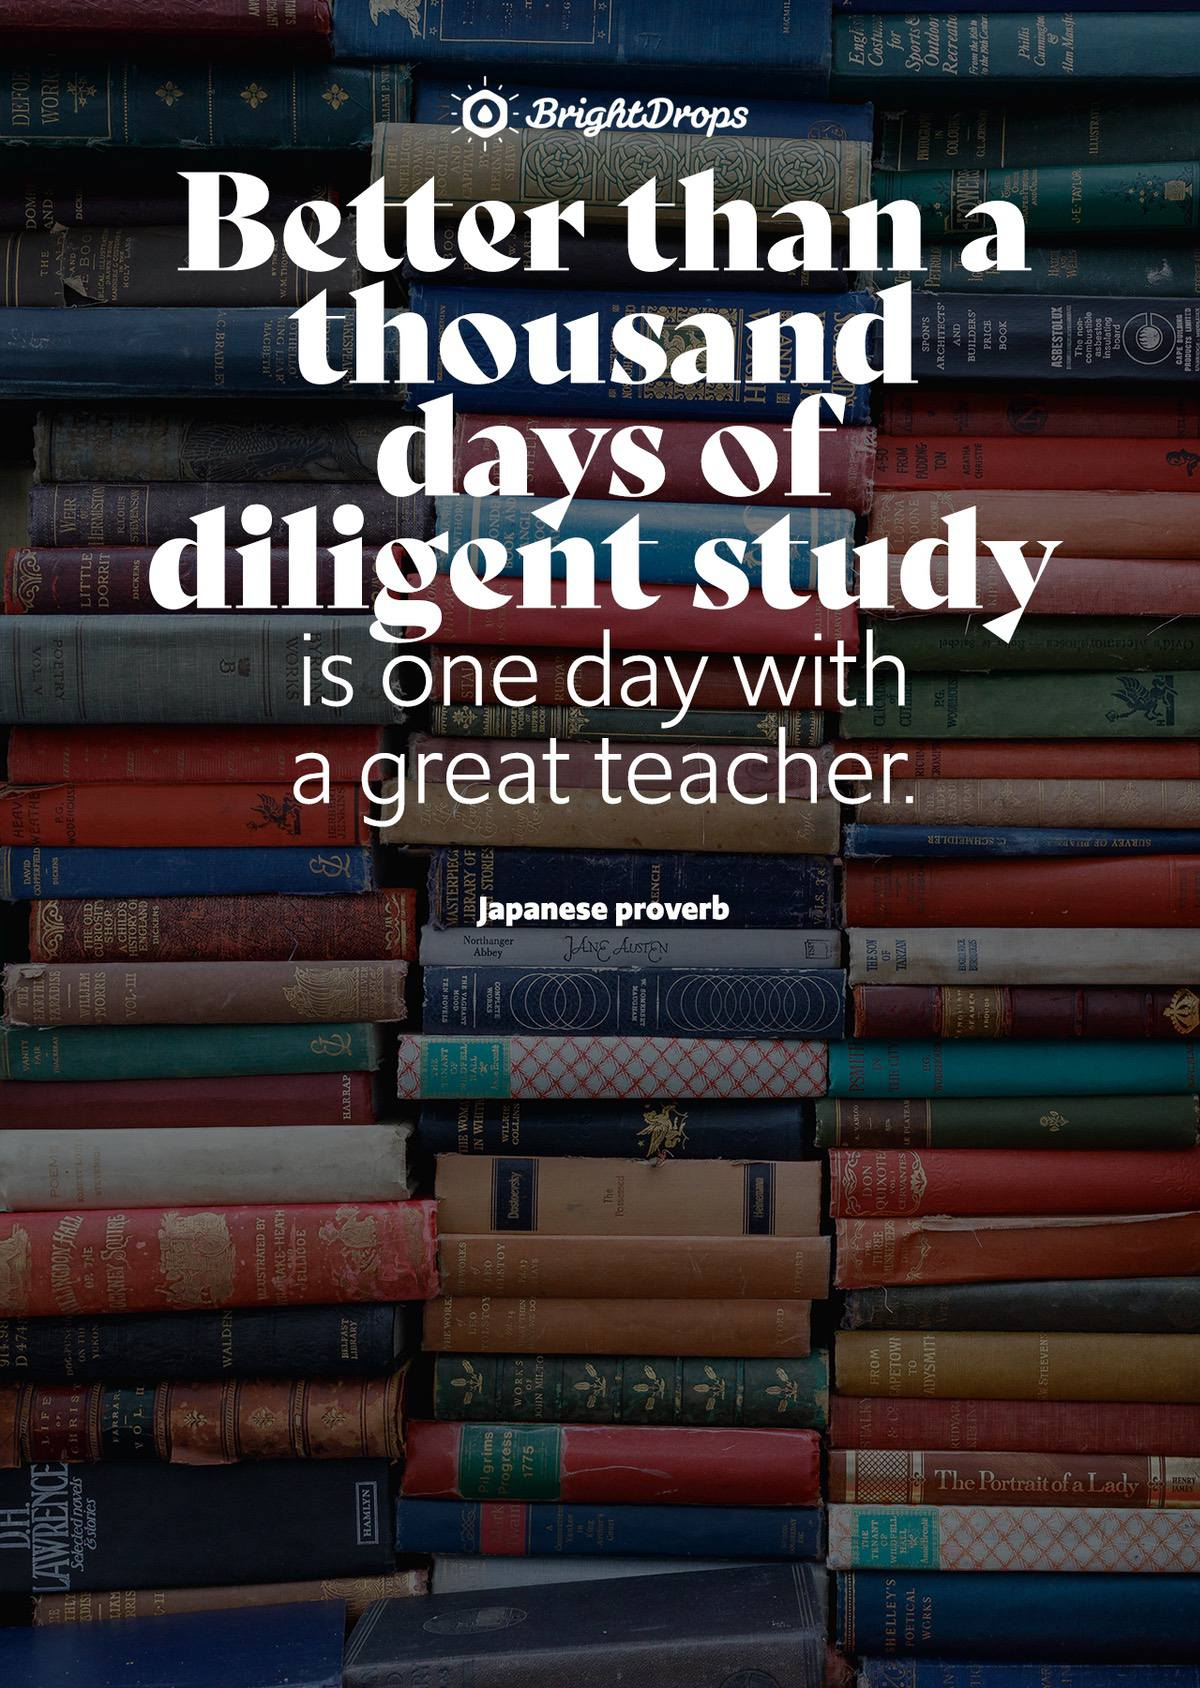 Better than a thousand days of diligent study is one day with a great teacher. - Japanese proverb